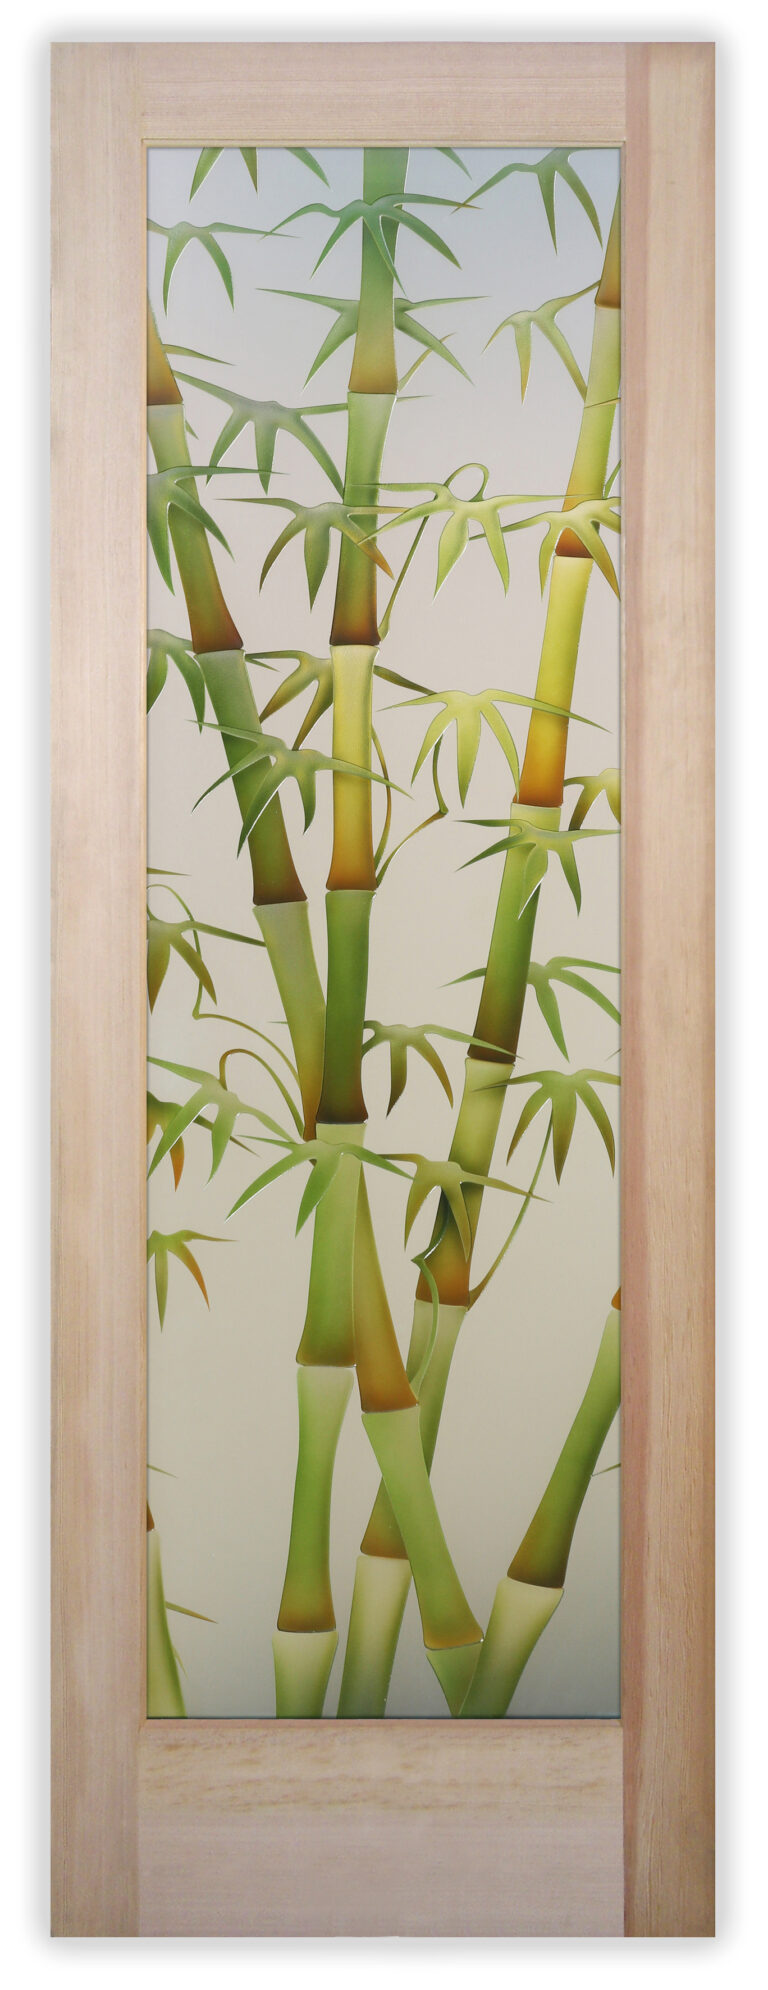 Bamboo Shoots II Green